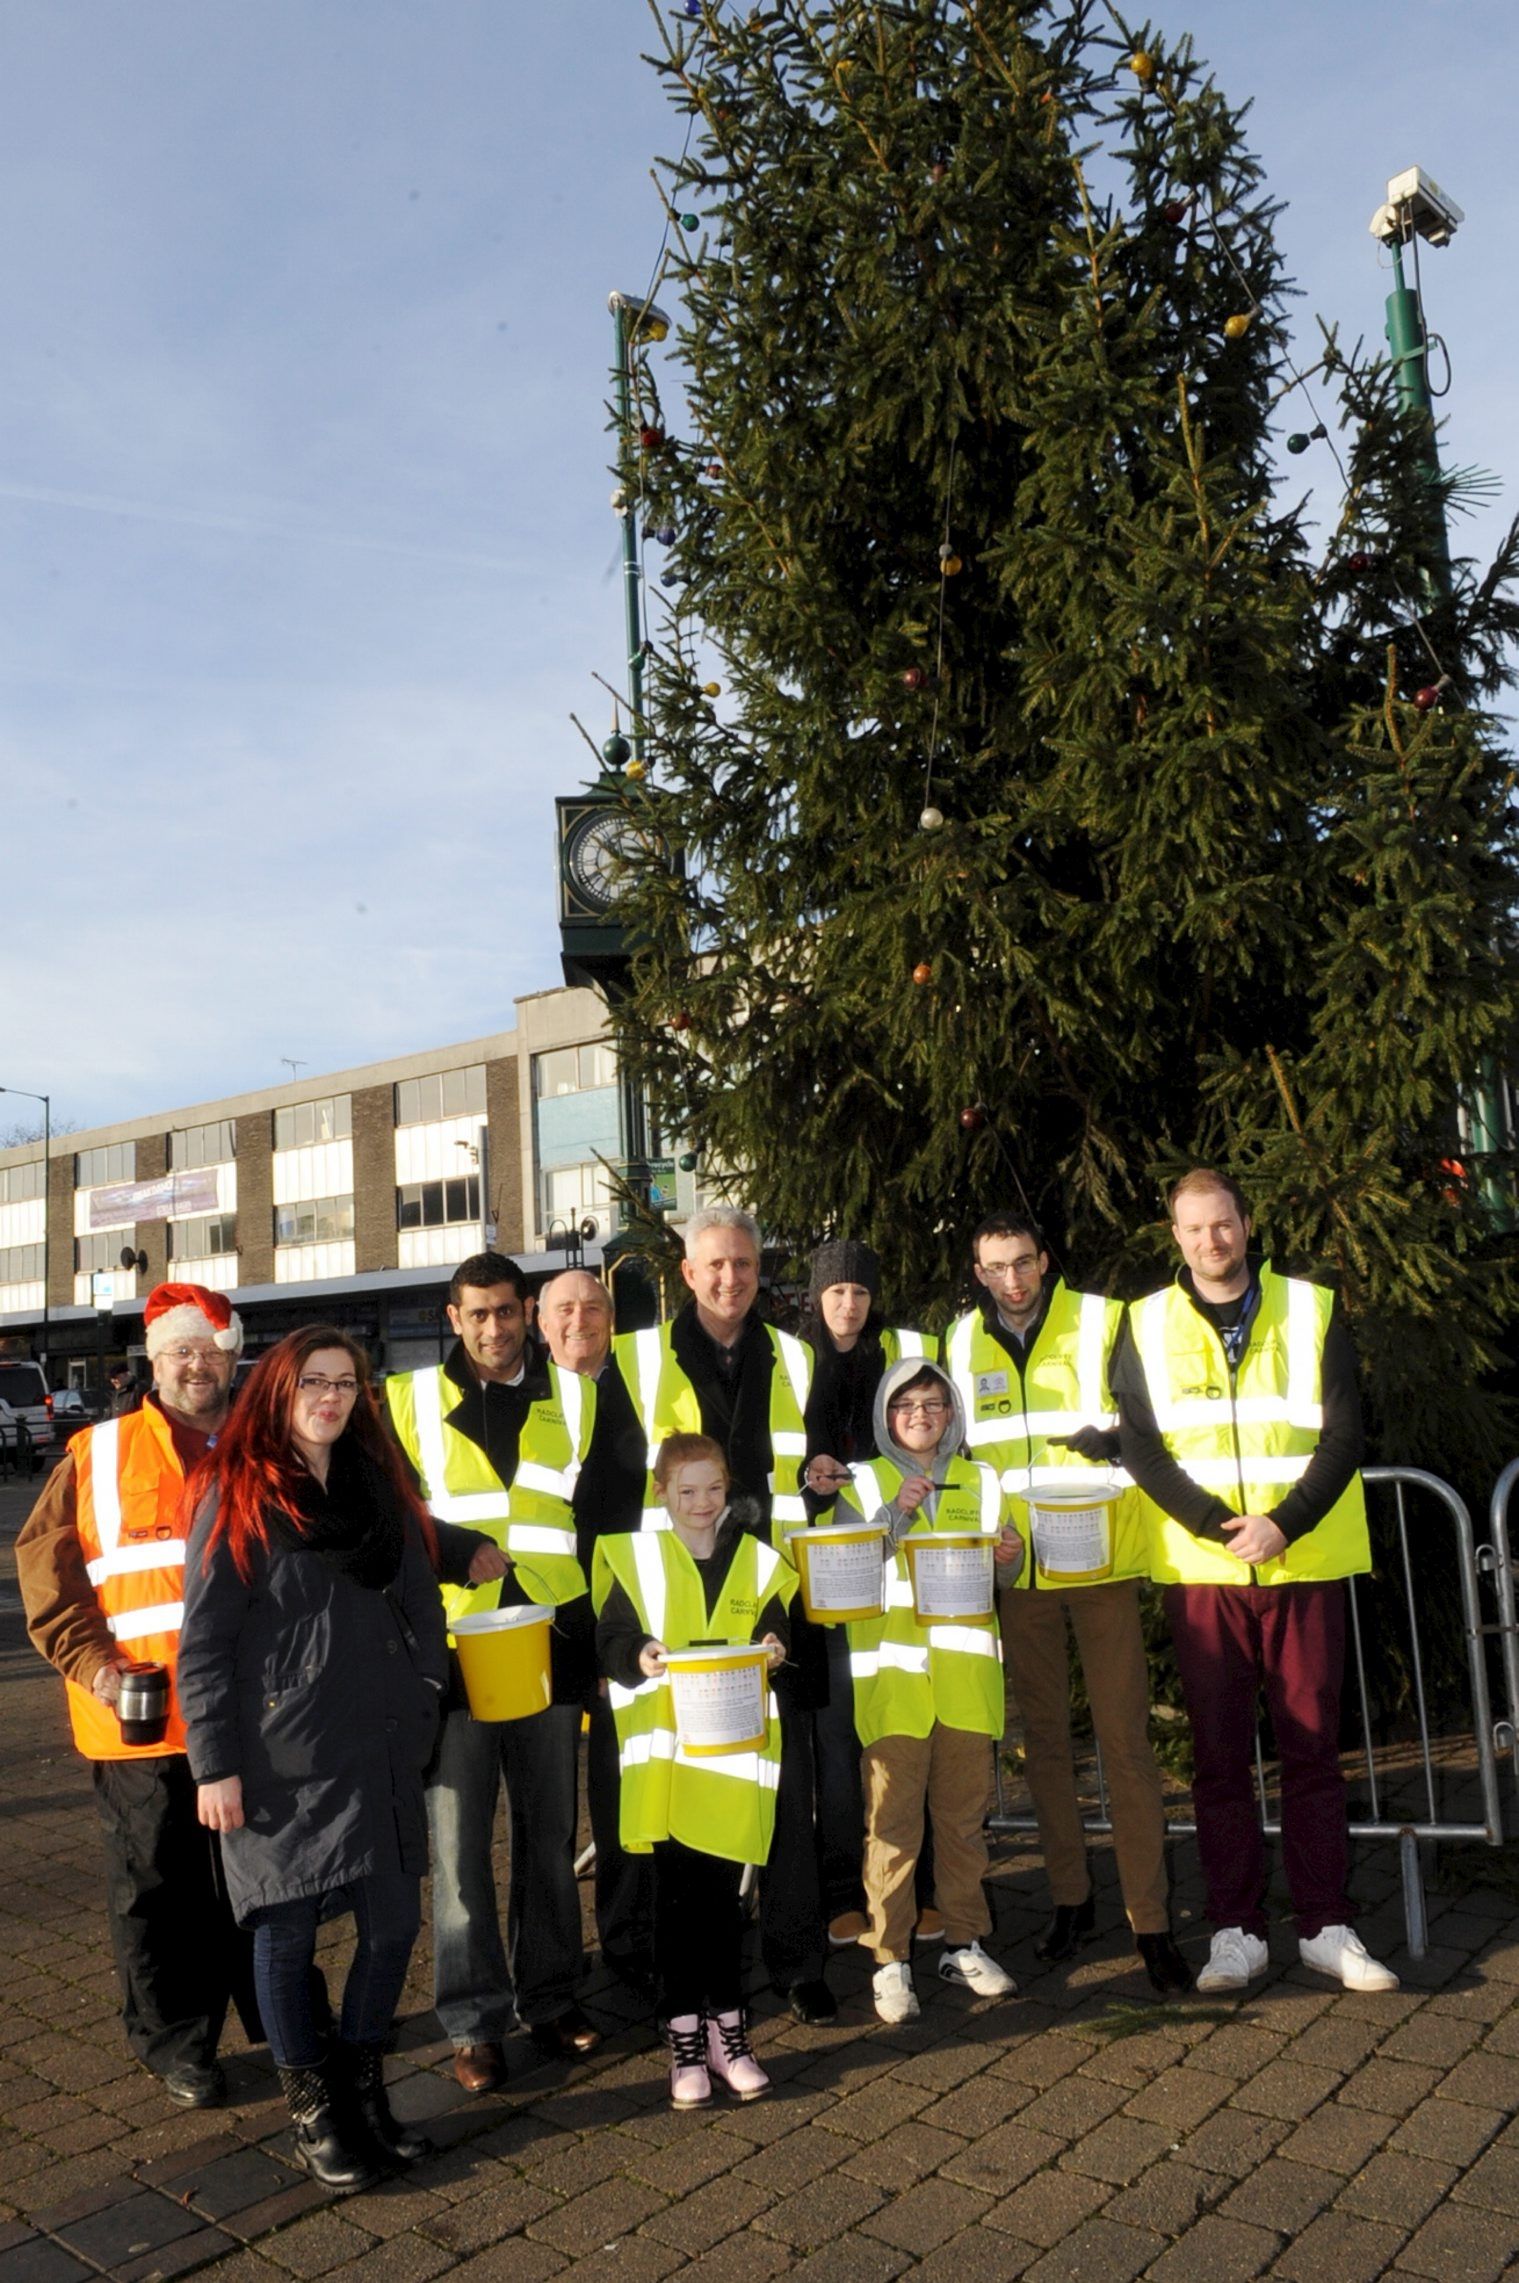 Tree-mendous effort: Heart-warming community victory as lights sparkle in Radcliffe